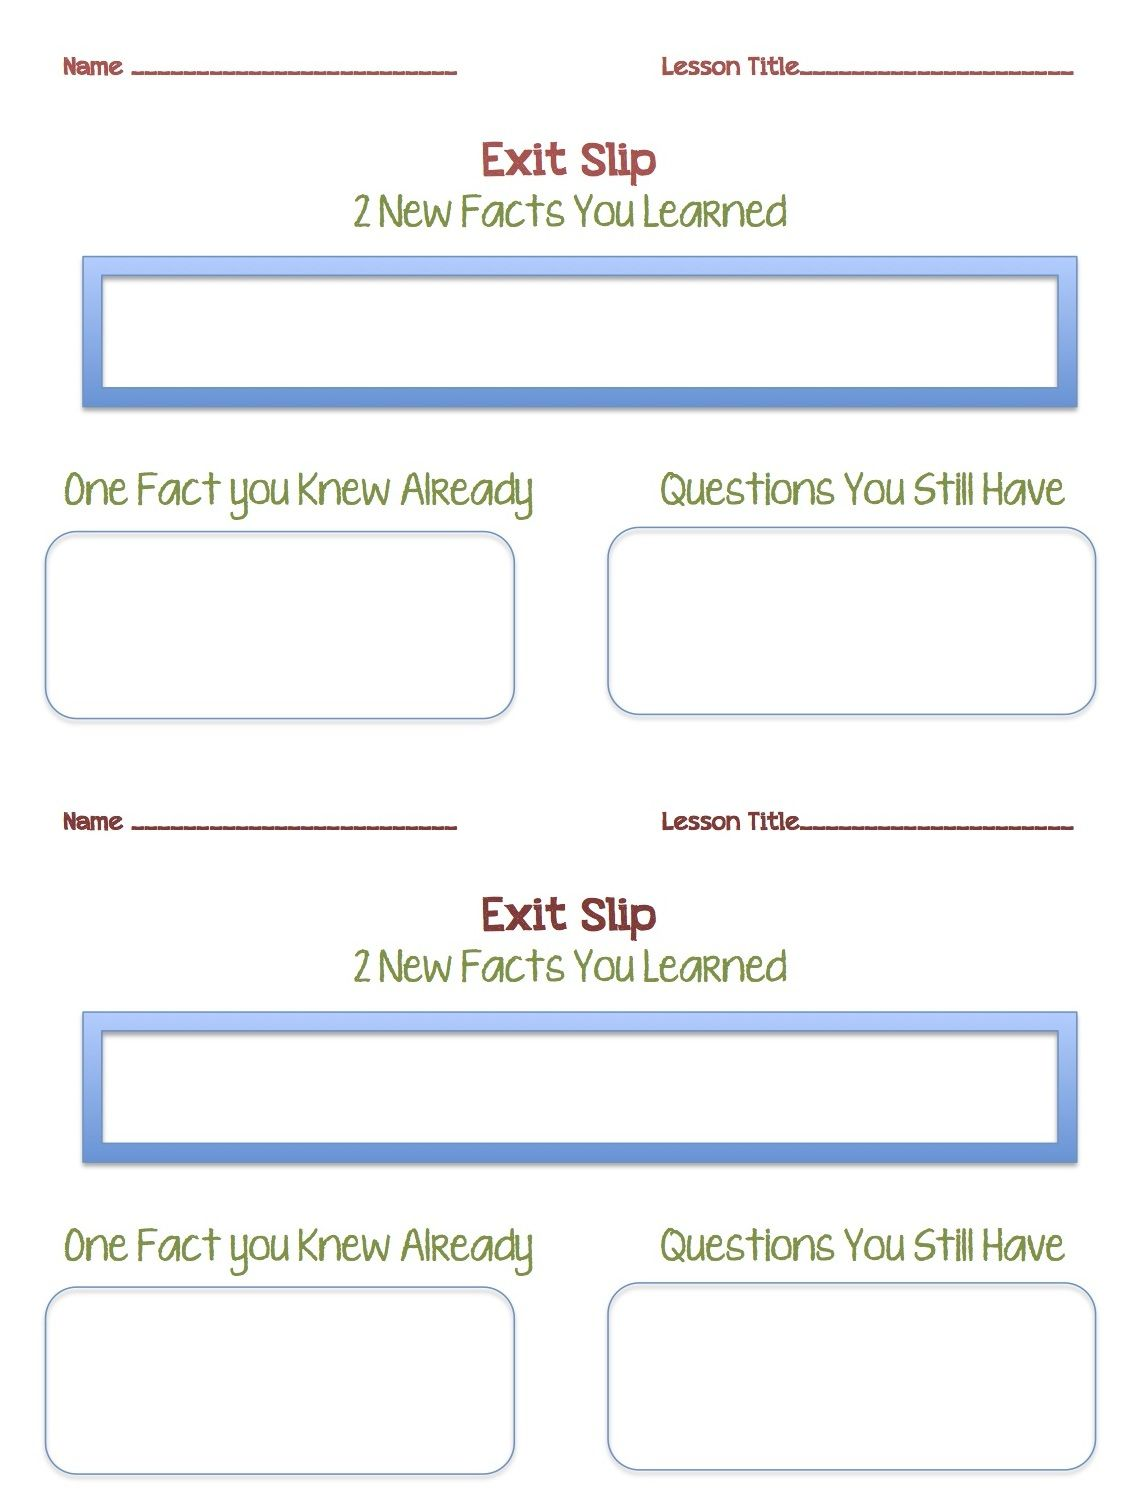 Workbooks Reflection Ks2 Worksheets Free Printable Worksheets